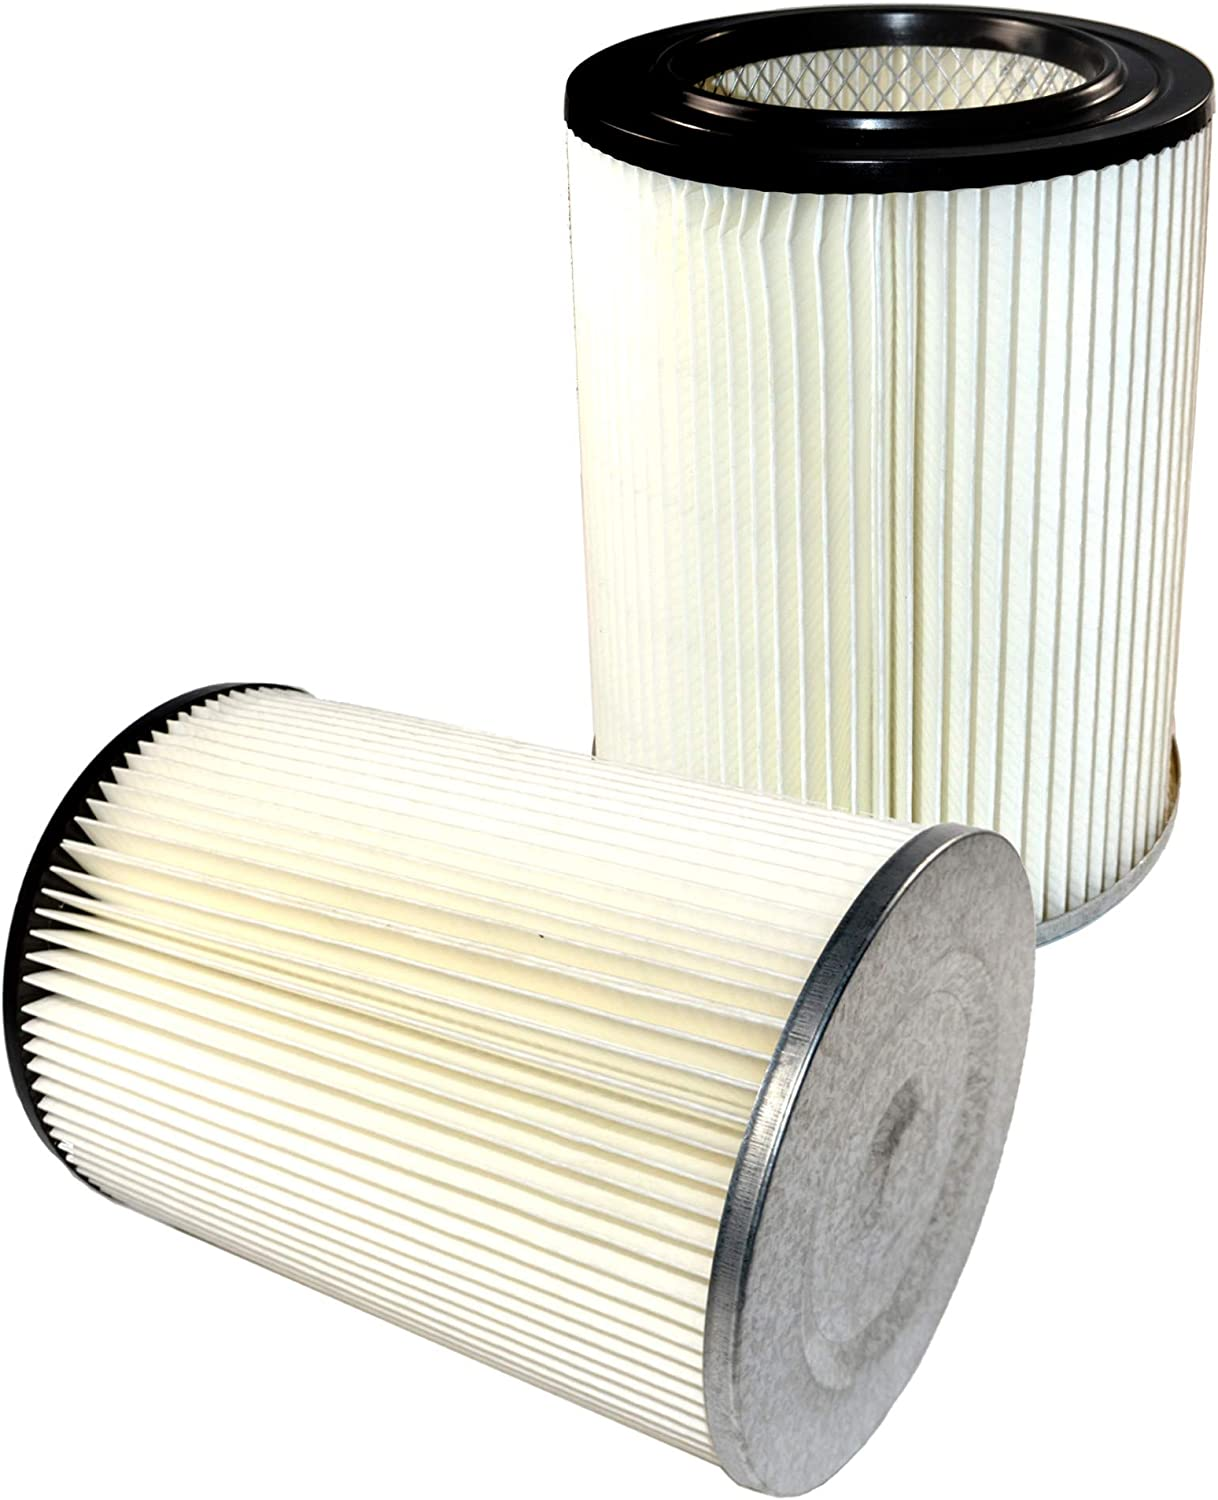 HQRP 2-pack General Purpose Cartridge Filter Compatible with Craftsman Red Stripe Vacuums part # 17816 9-17816 Replacement, New Design